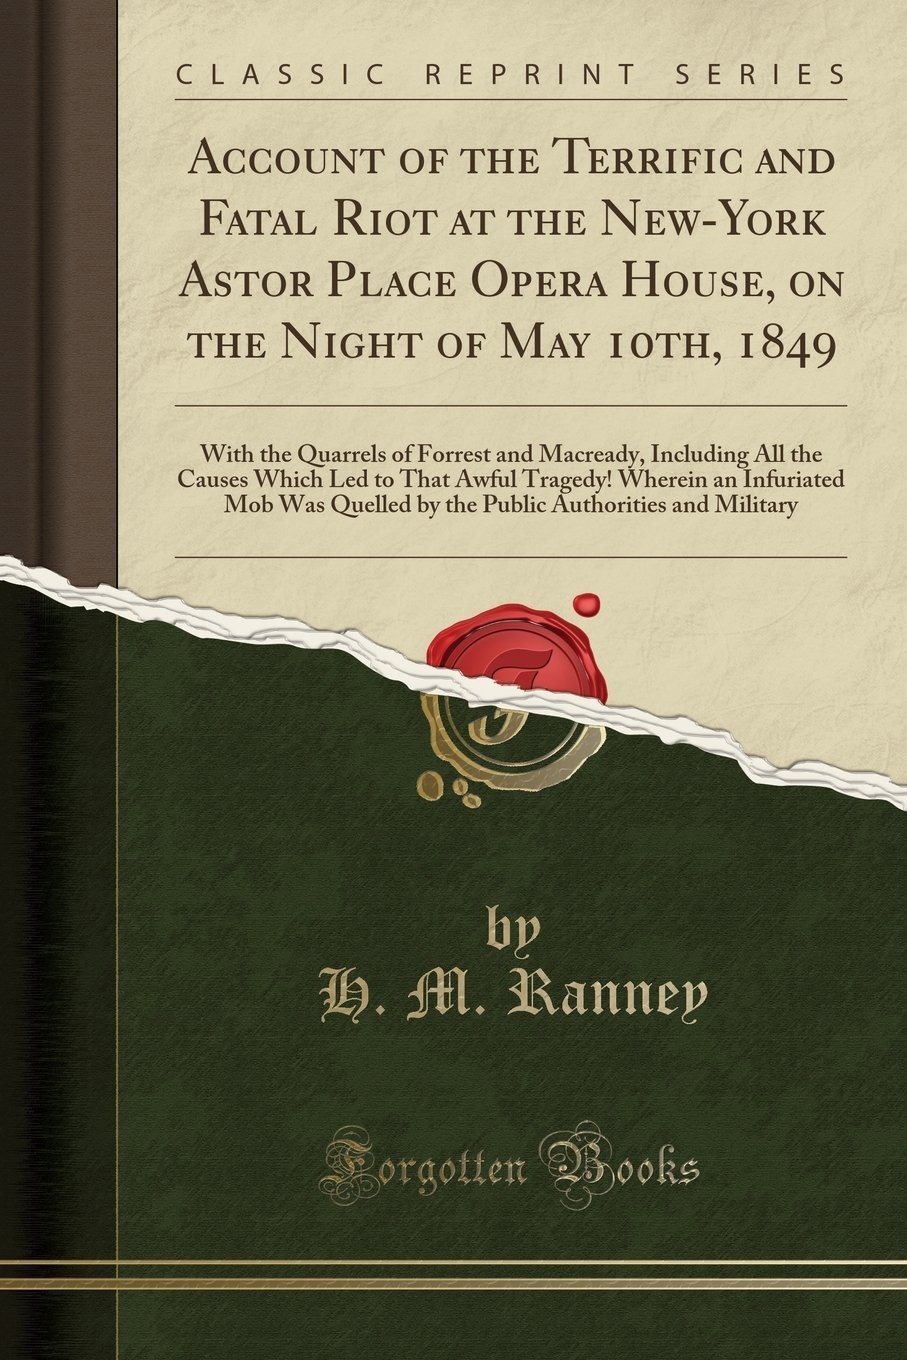 Account of the Terrific and Fatal Riot at the New-York Astor Place Opera  House, on the Night of May 10th, 1849: With the Quarrels of Forrest and .